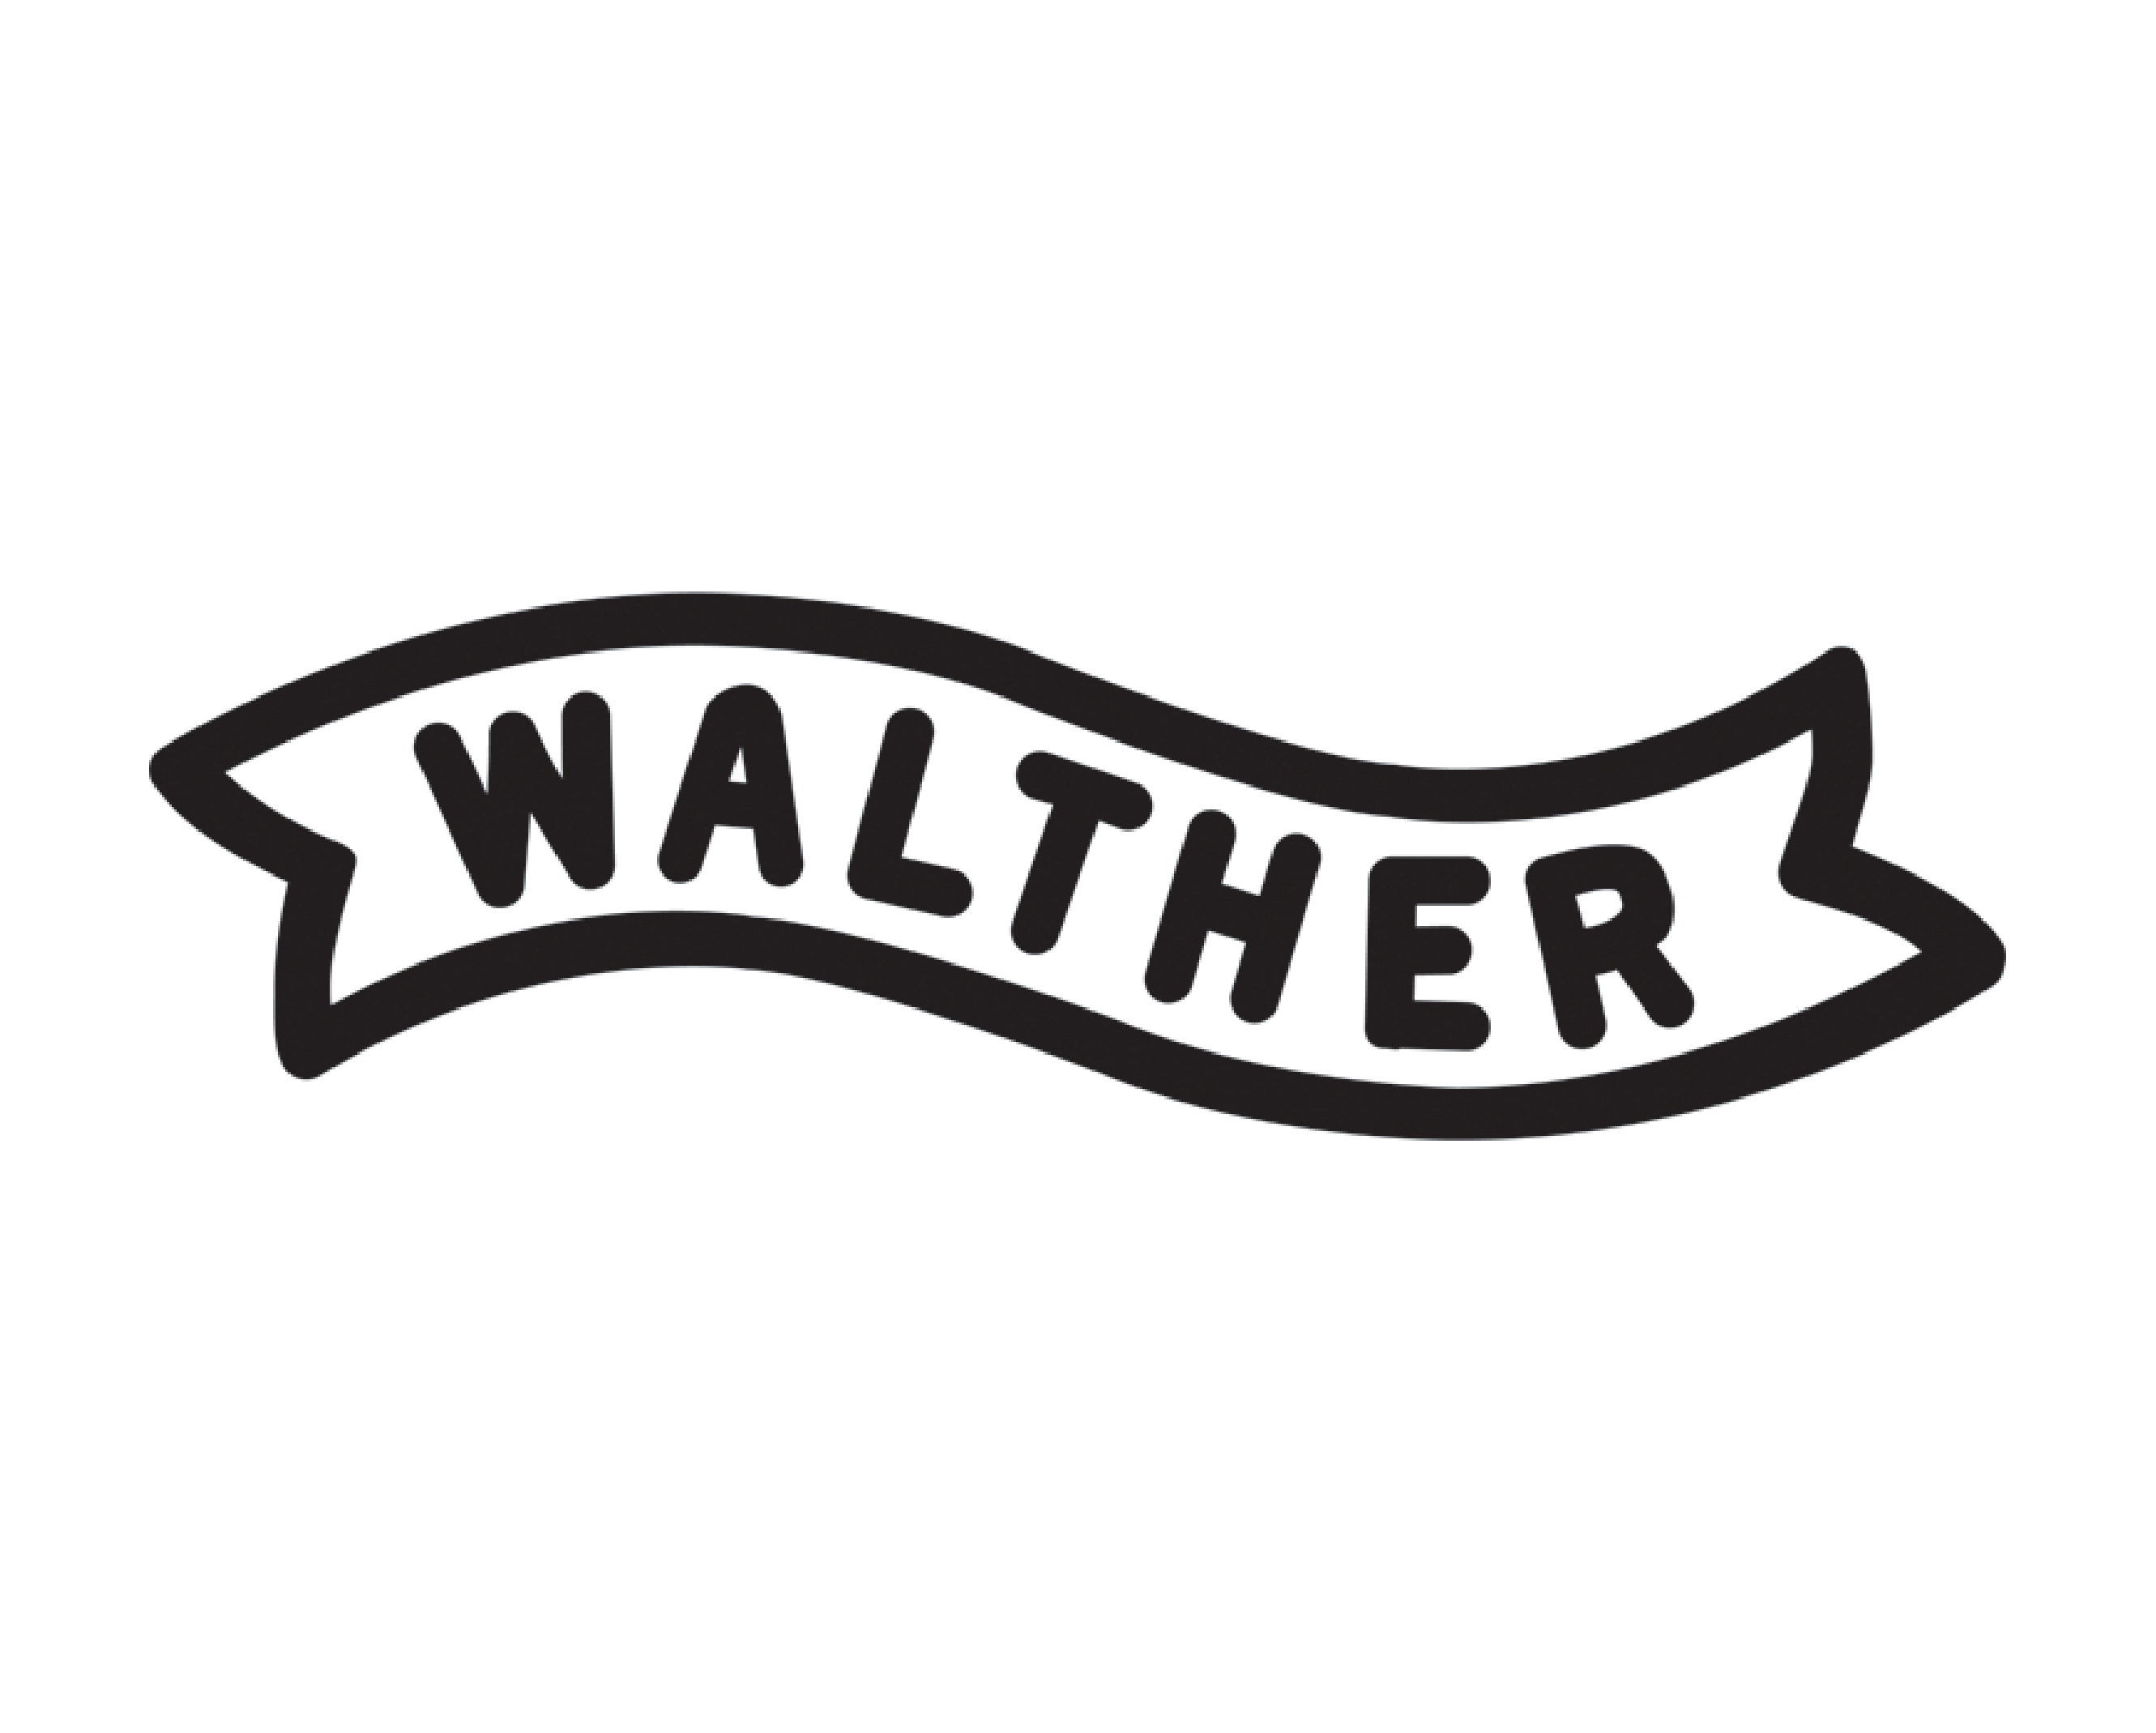 //centre-tir.ch/wp-content/uploads/2017/10/Walther_Logo.png